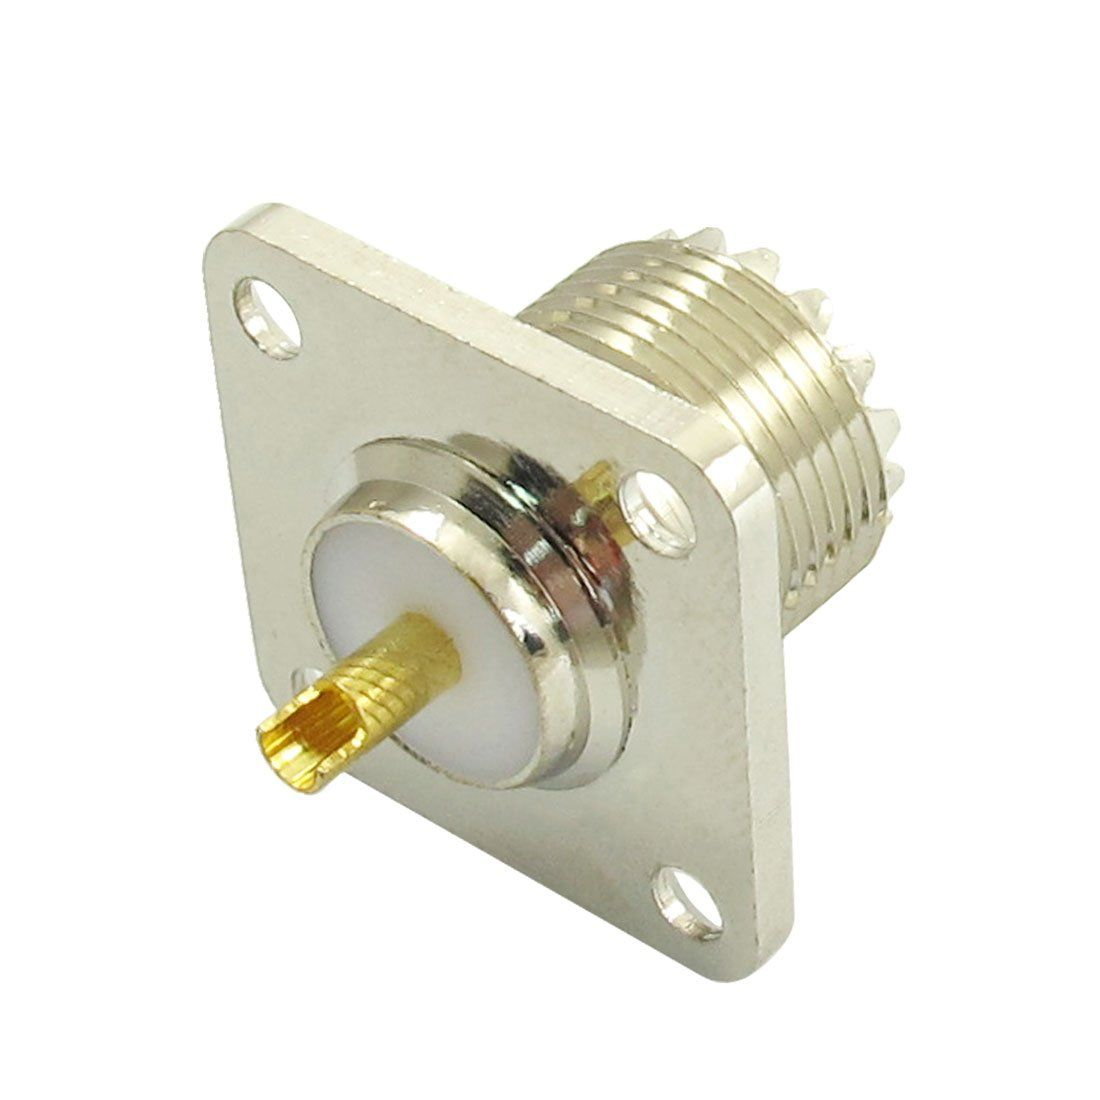 So female jack square shape solder cup coax connector for radio